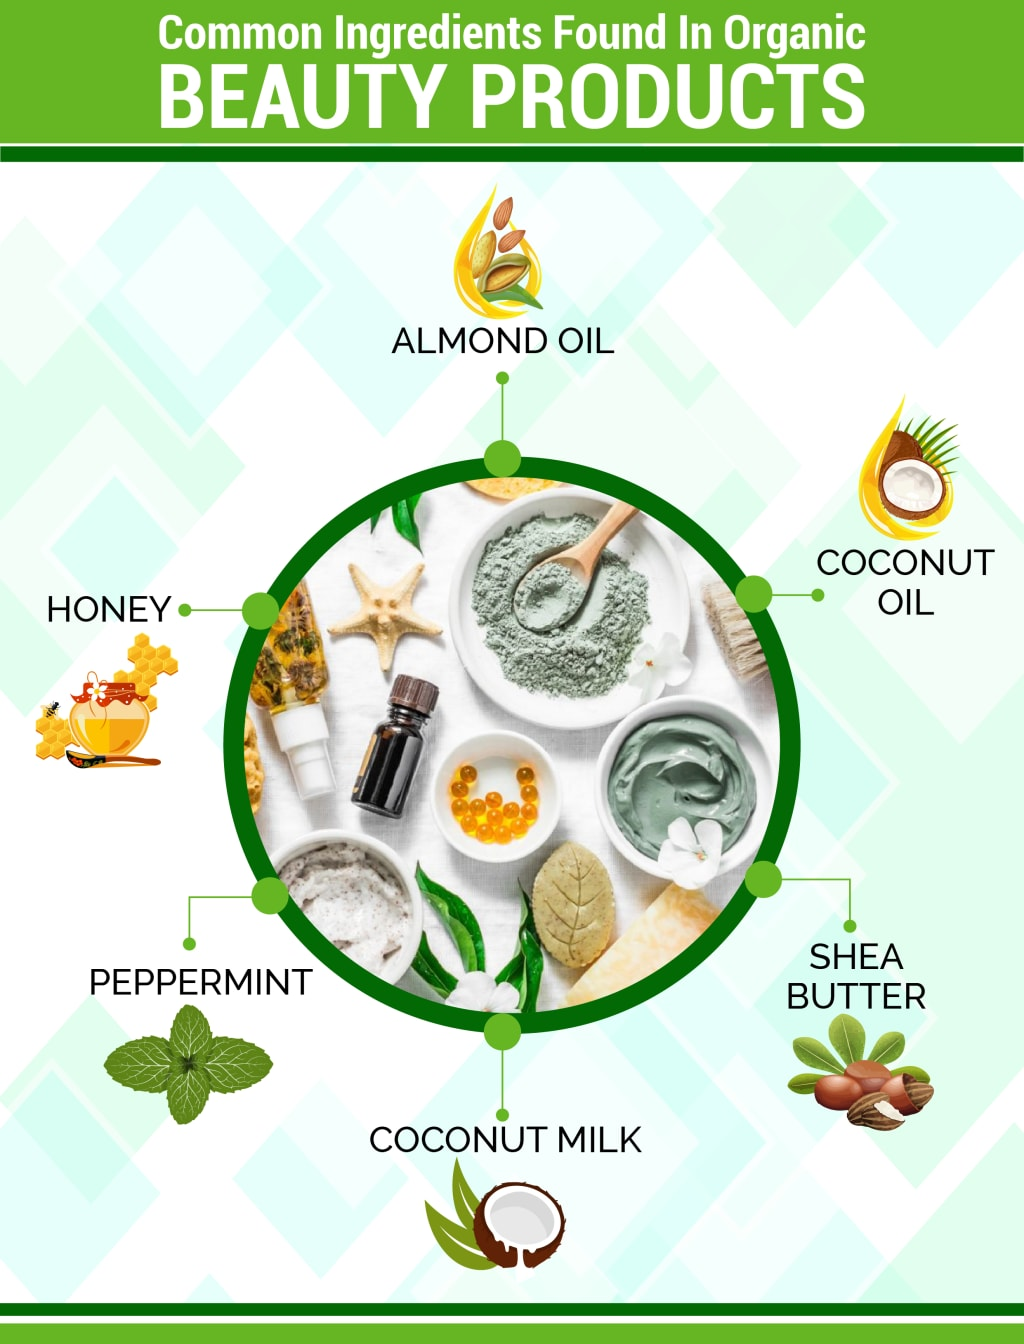 3 Organic Foods That Can Transform Your Complexion and Add These Two Natural Ingredients to Your Diet For Amazing Skin